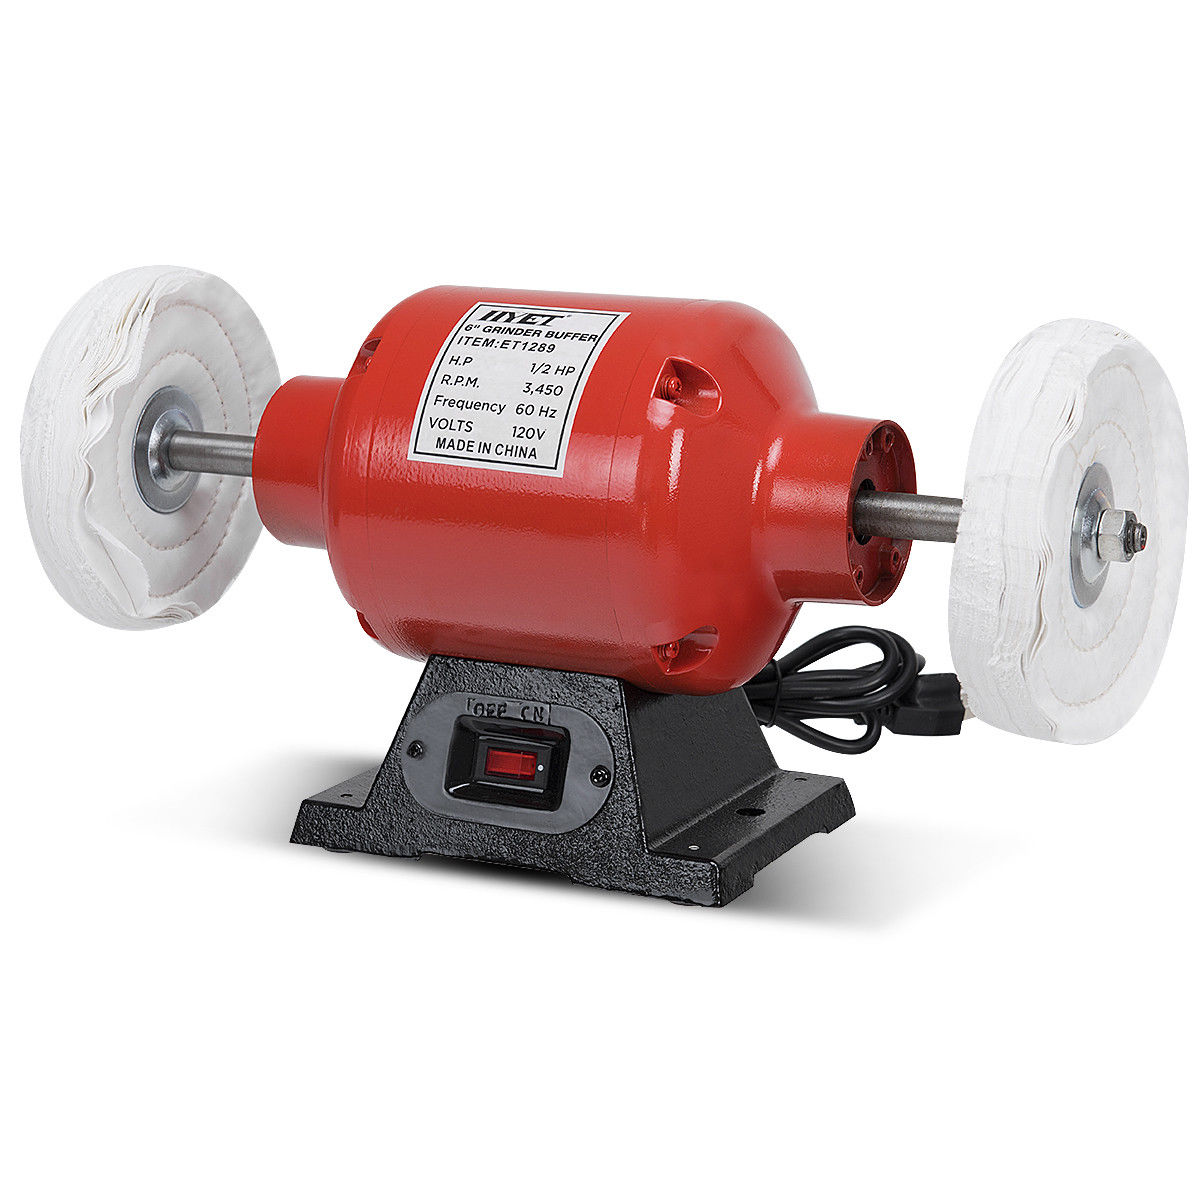 Costway 6 Inch Benchtop Buffer Polisher Grinder Heavy Duty 1/2HP with Two Buffing Wheels